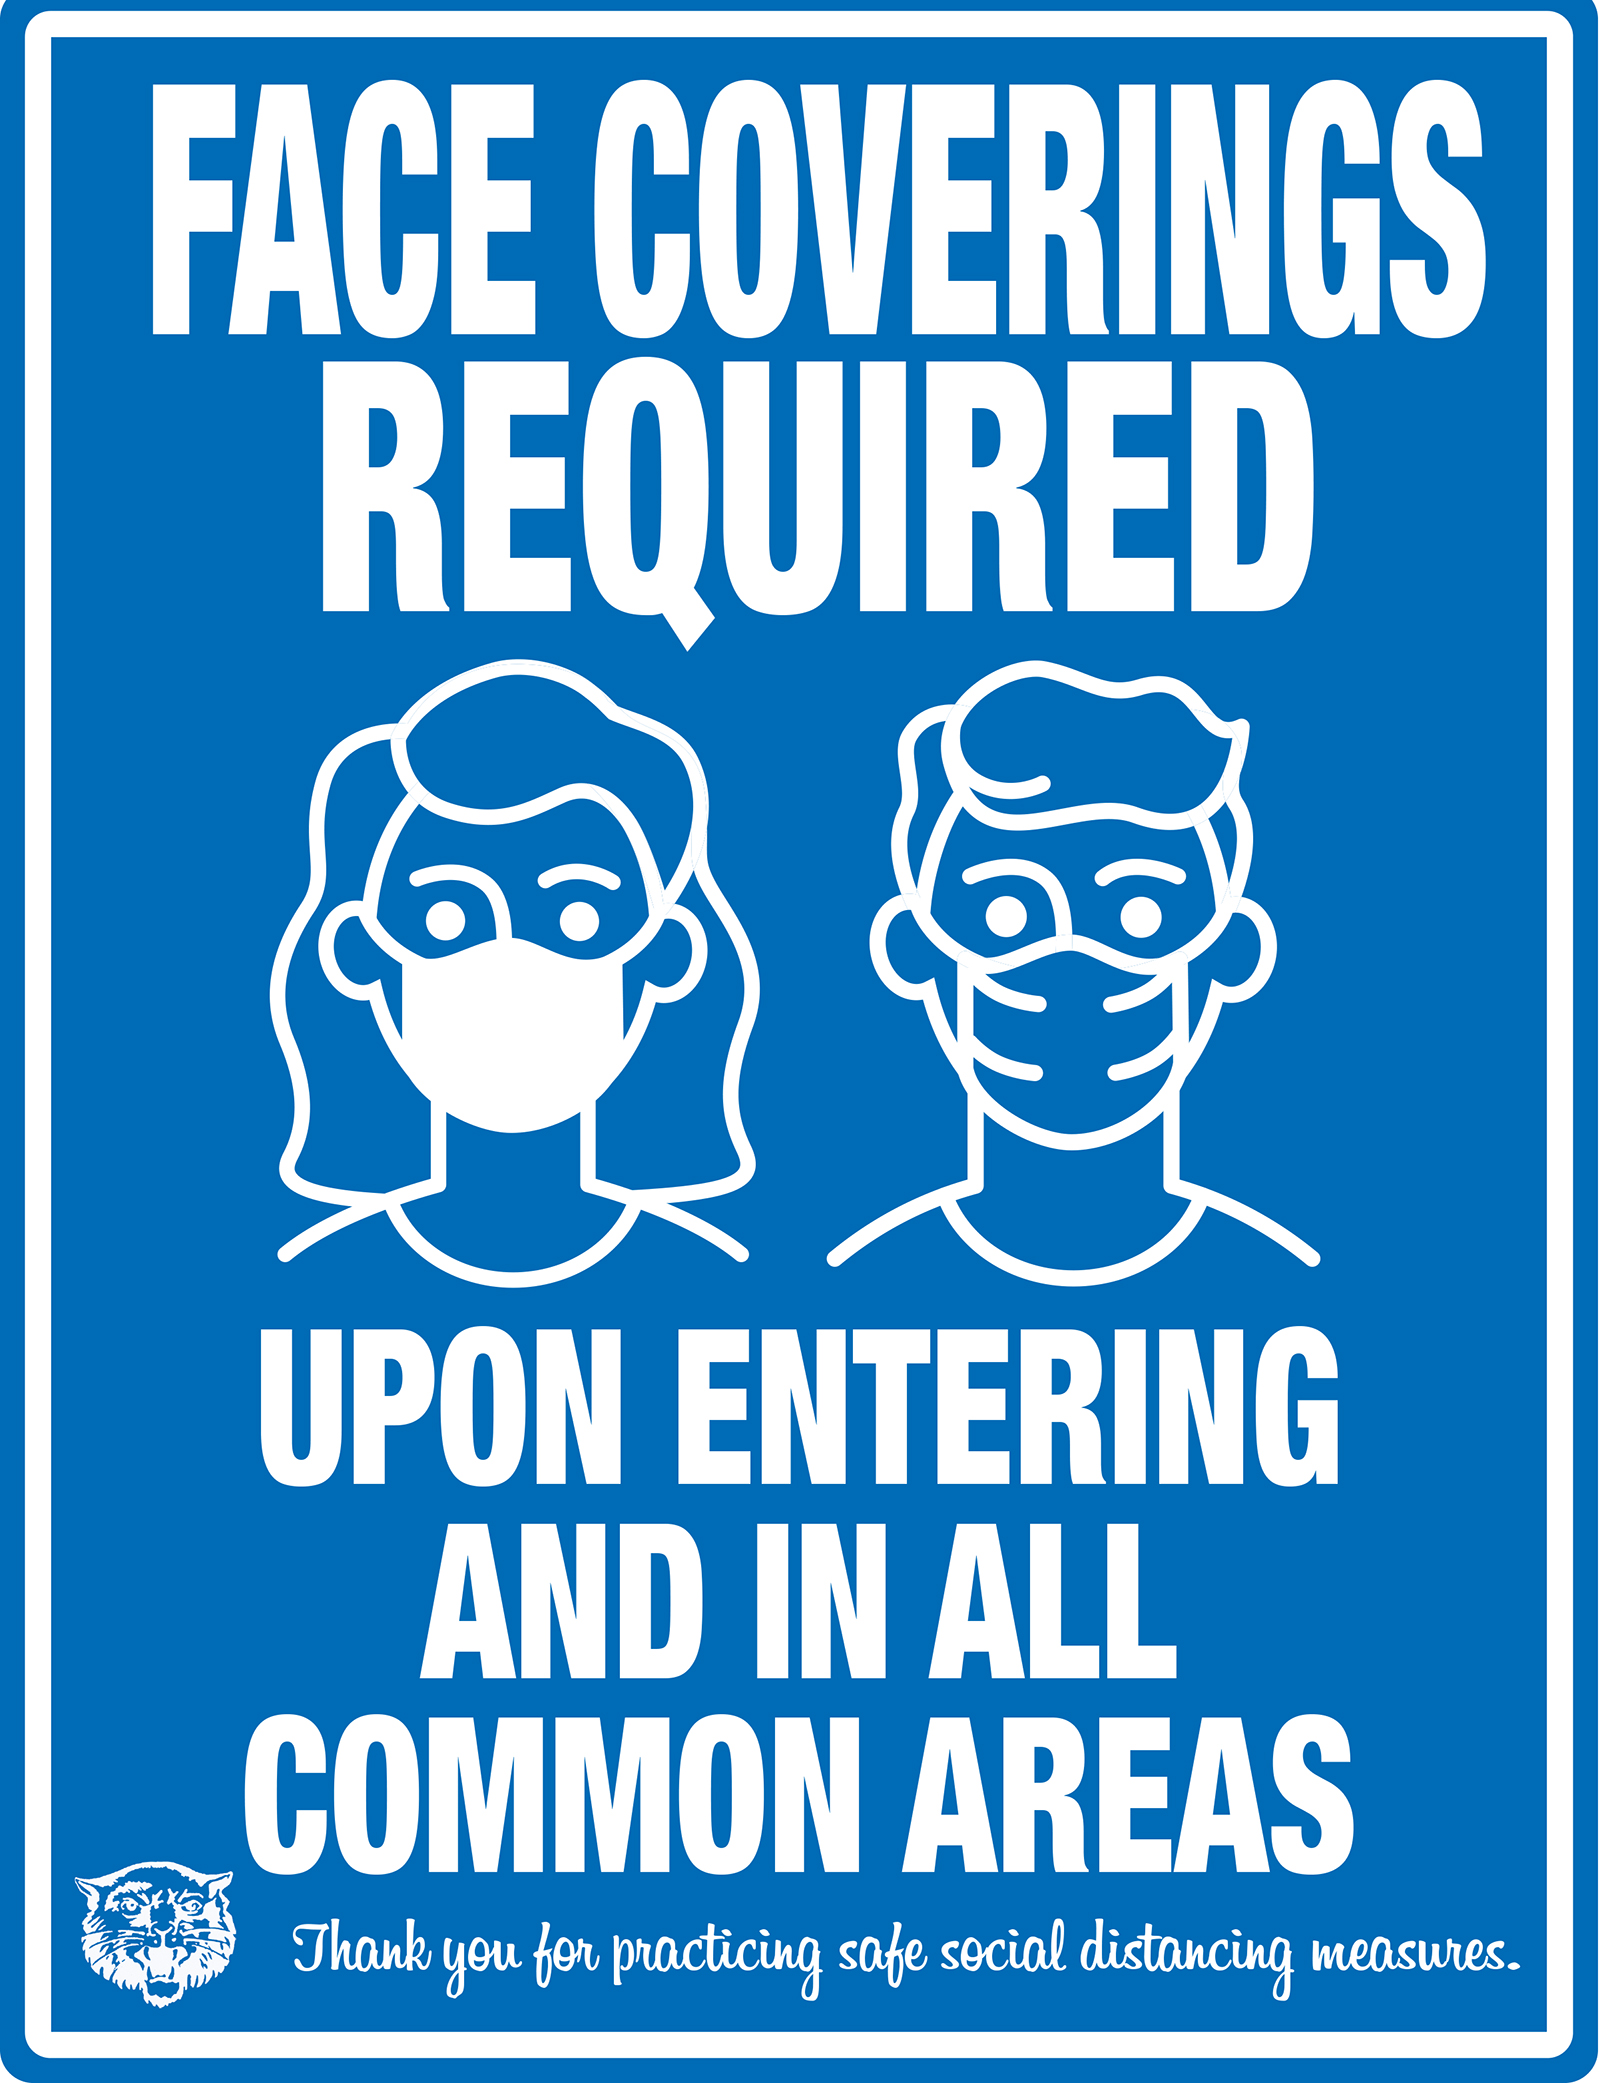 FACE COVERINGS REQUIRED UPON ENTERING AND IN ALL COMMON AREAS Thank you for practicing safe social distancing measures.